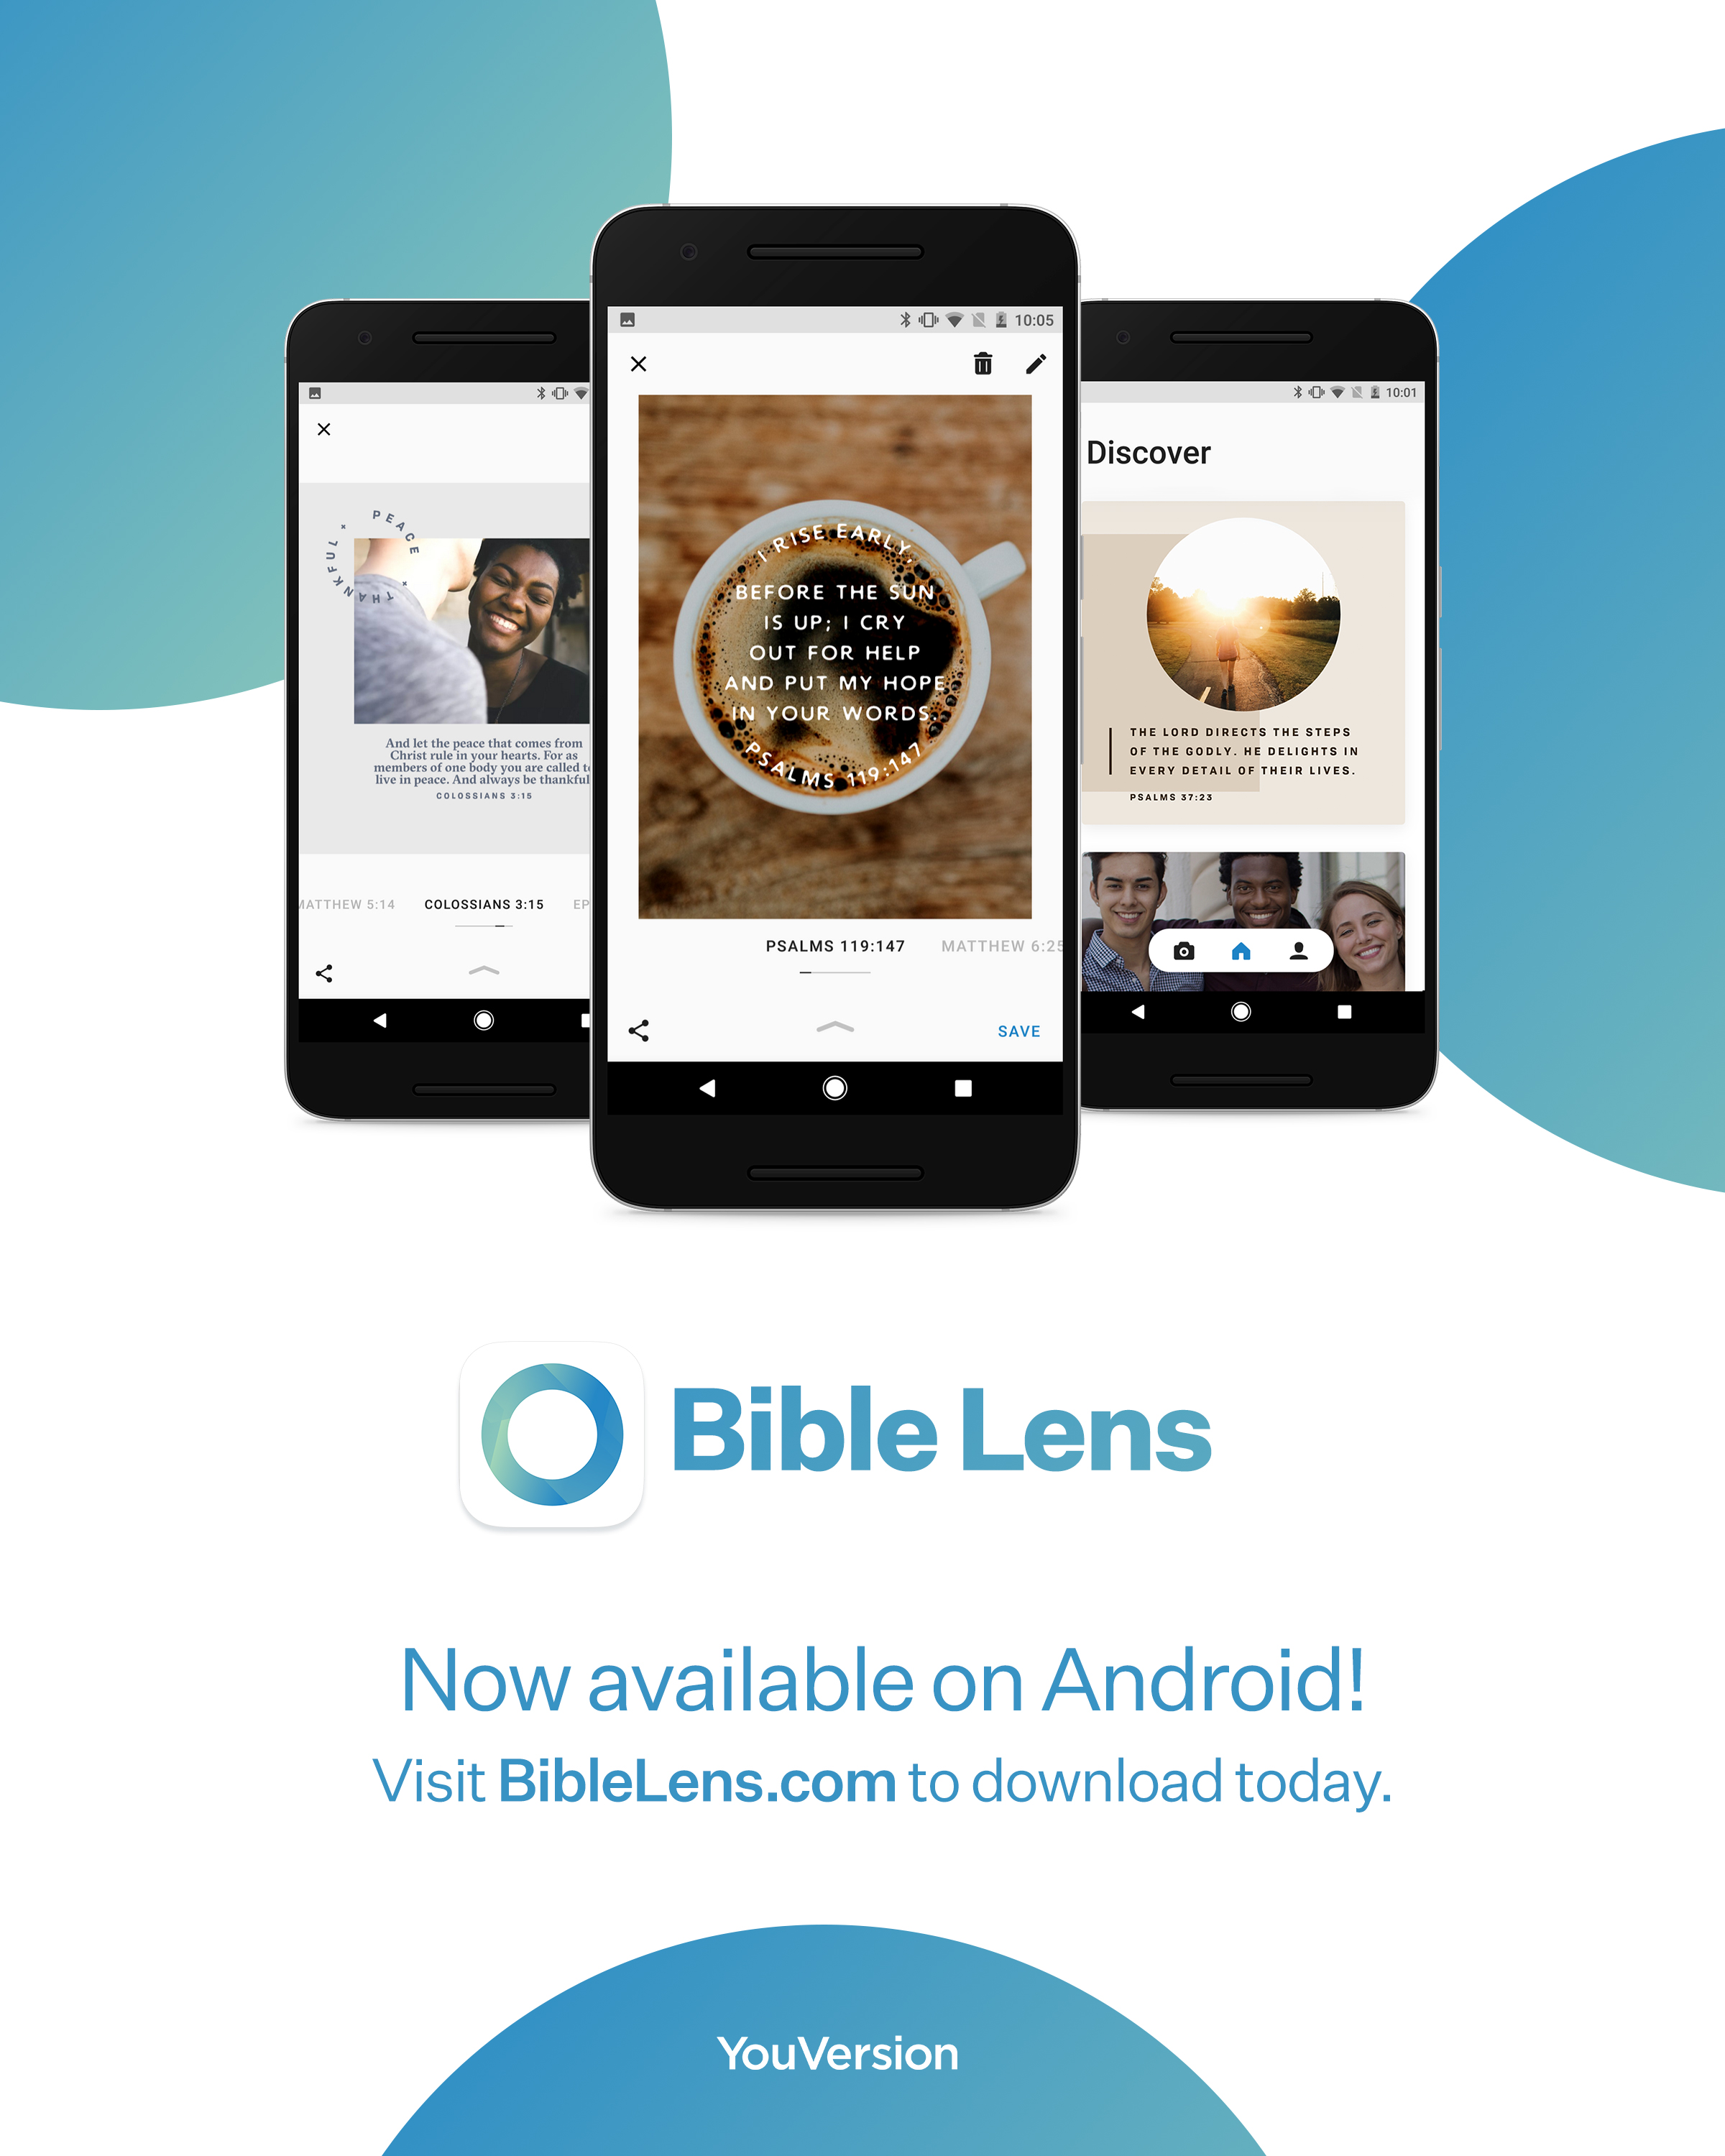 Bible Lens - Now available on Android